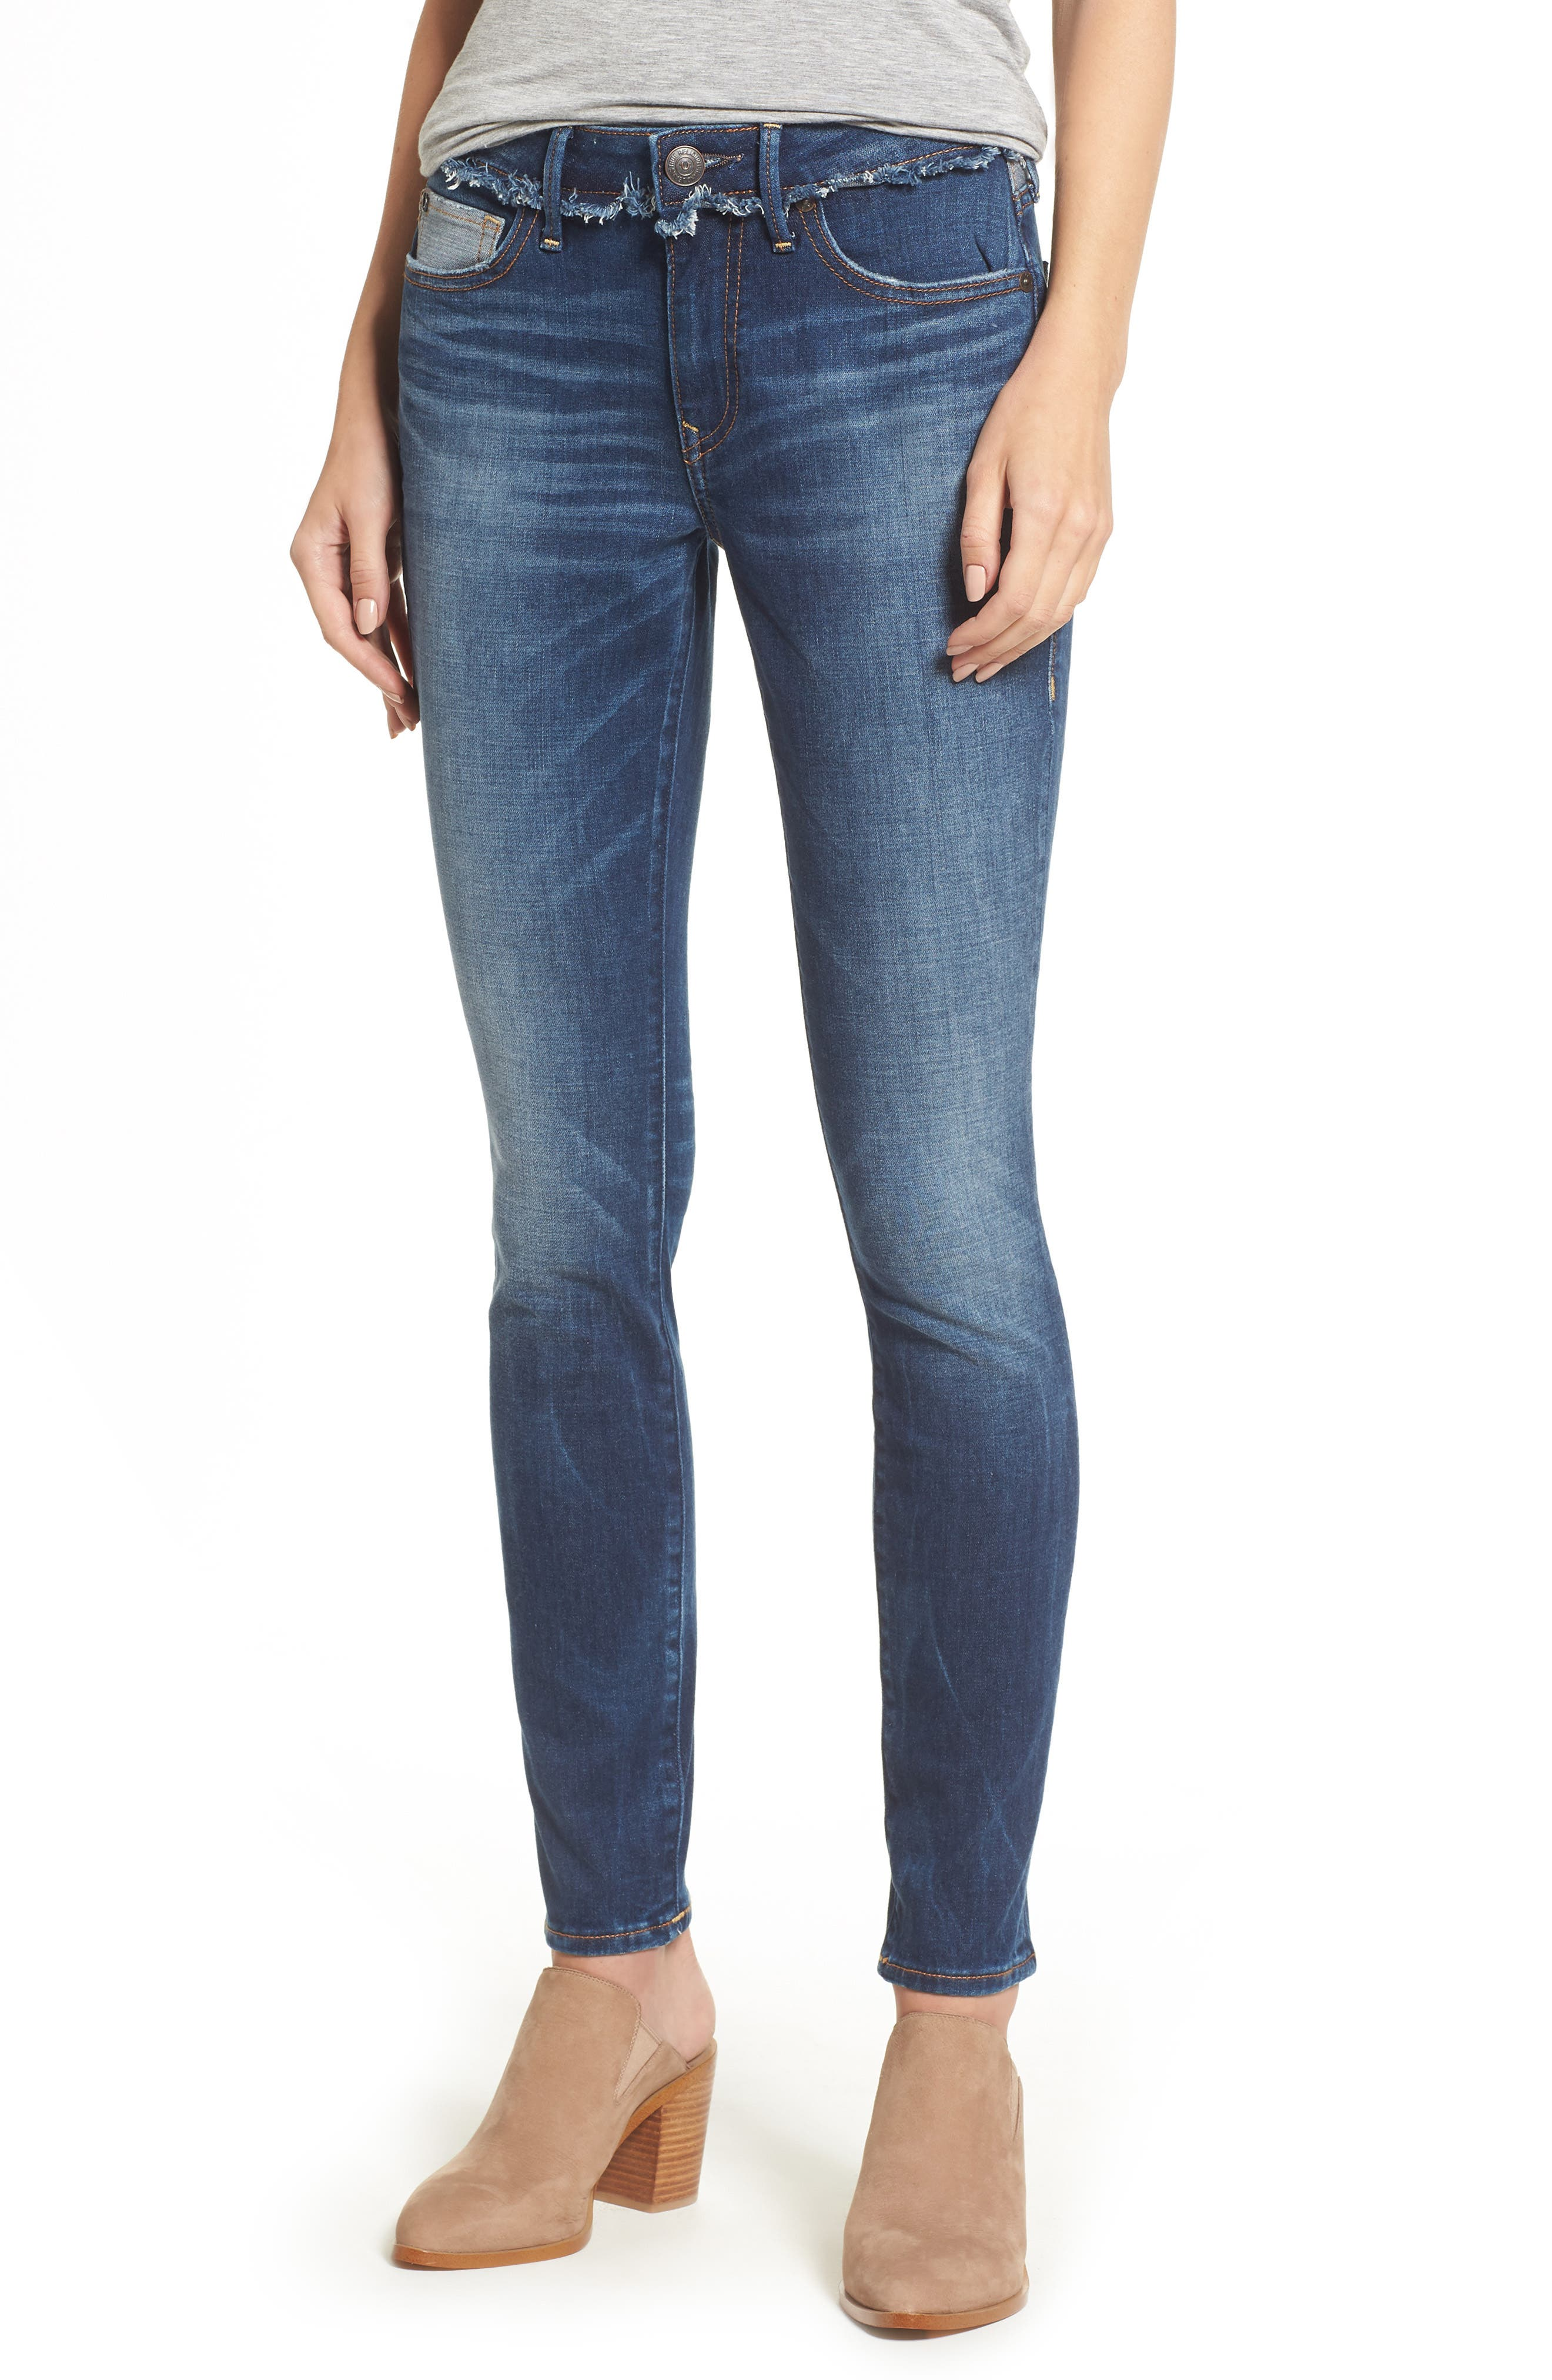 Jennie Deconstructed Skinny Jeans,                             Main thumbnail 1, color,                             401